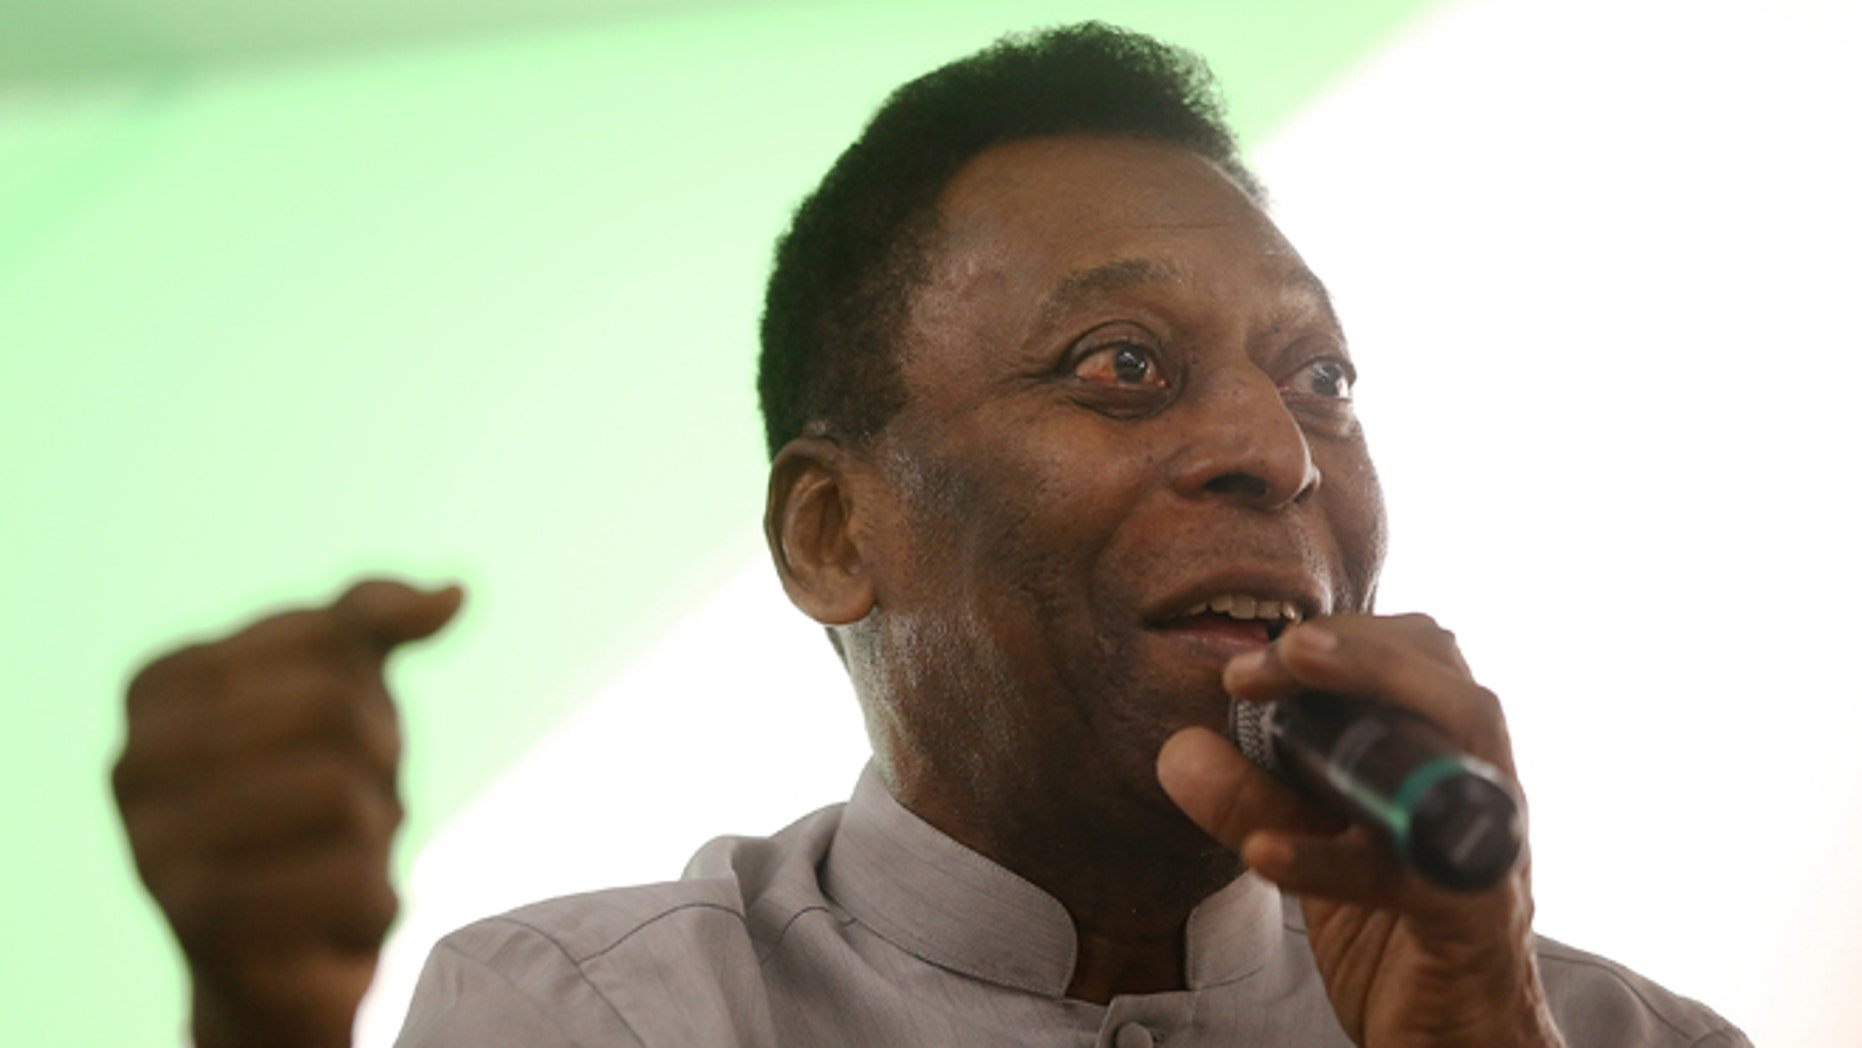 RIO DE JANEIRO, BRAZIL - MAY 15:  Brazilian soccer legend Pele speaks to customers in the Apple store on May 15, 2014 in Rio de Janeiro, Brazil. Pele and film director Anibal Neto spoke with customers about 'Pele Eterno', a documentary about Pele's life. The 2014 FIFA World Cup kicks off on June 12.  (Photo by Mario Tama/Getty Images)